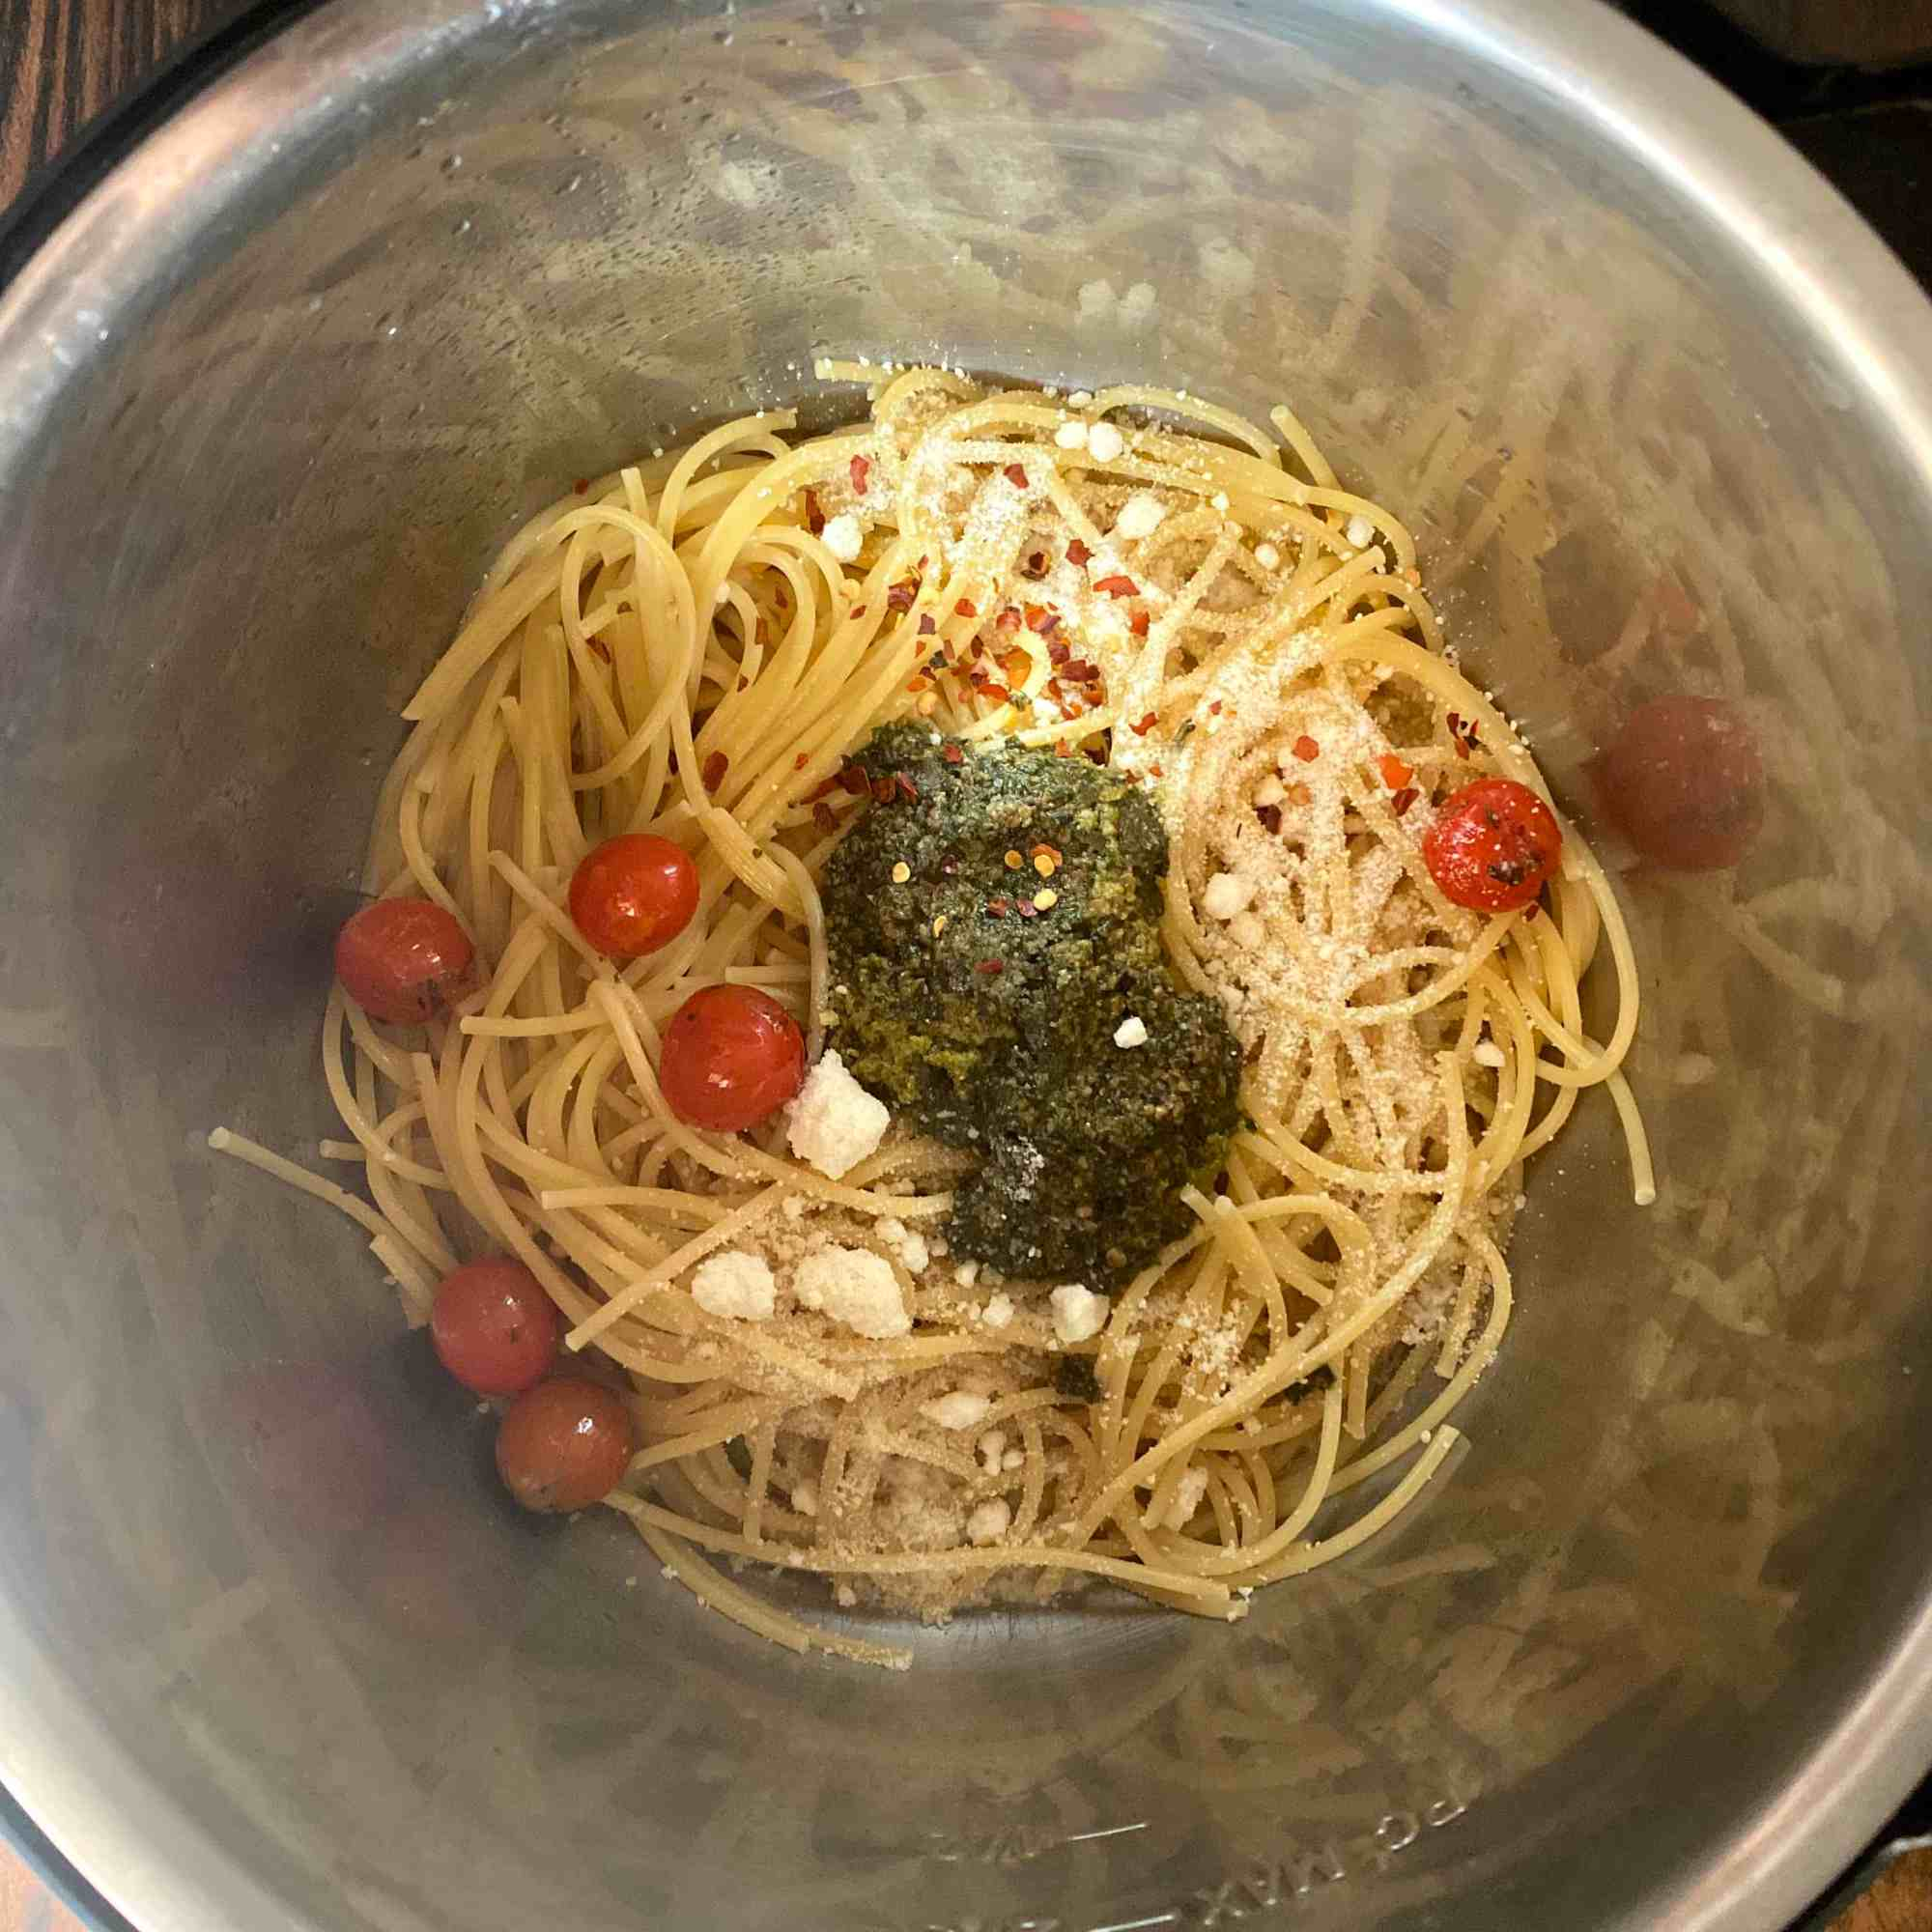 Let Spaghetii cool a bit , then add Basil Pesto, roasted tomatoes and cheese